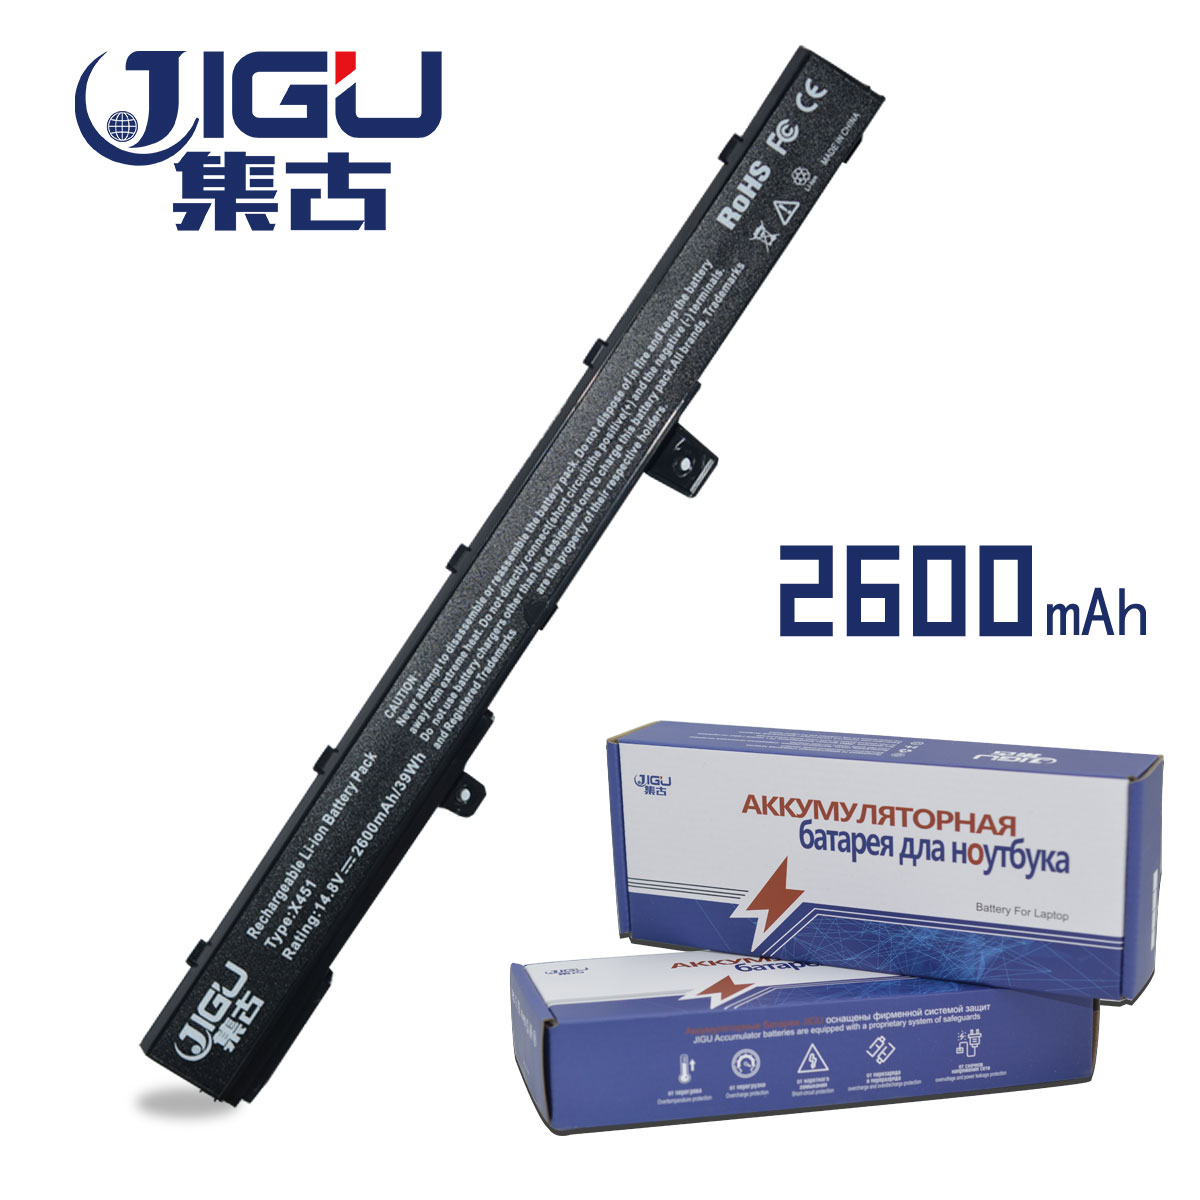 JIGU Laptop Battery 0B110-00250100 A41N1308 A31N1319 FOR ASUS X451 X551 X451C X451CA X551C X551CA дрель аккумуляторная ryobi rcd12011l